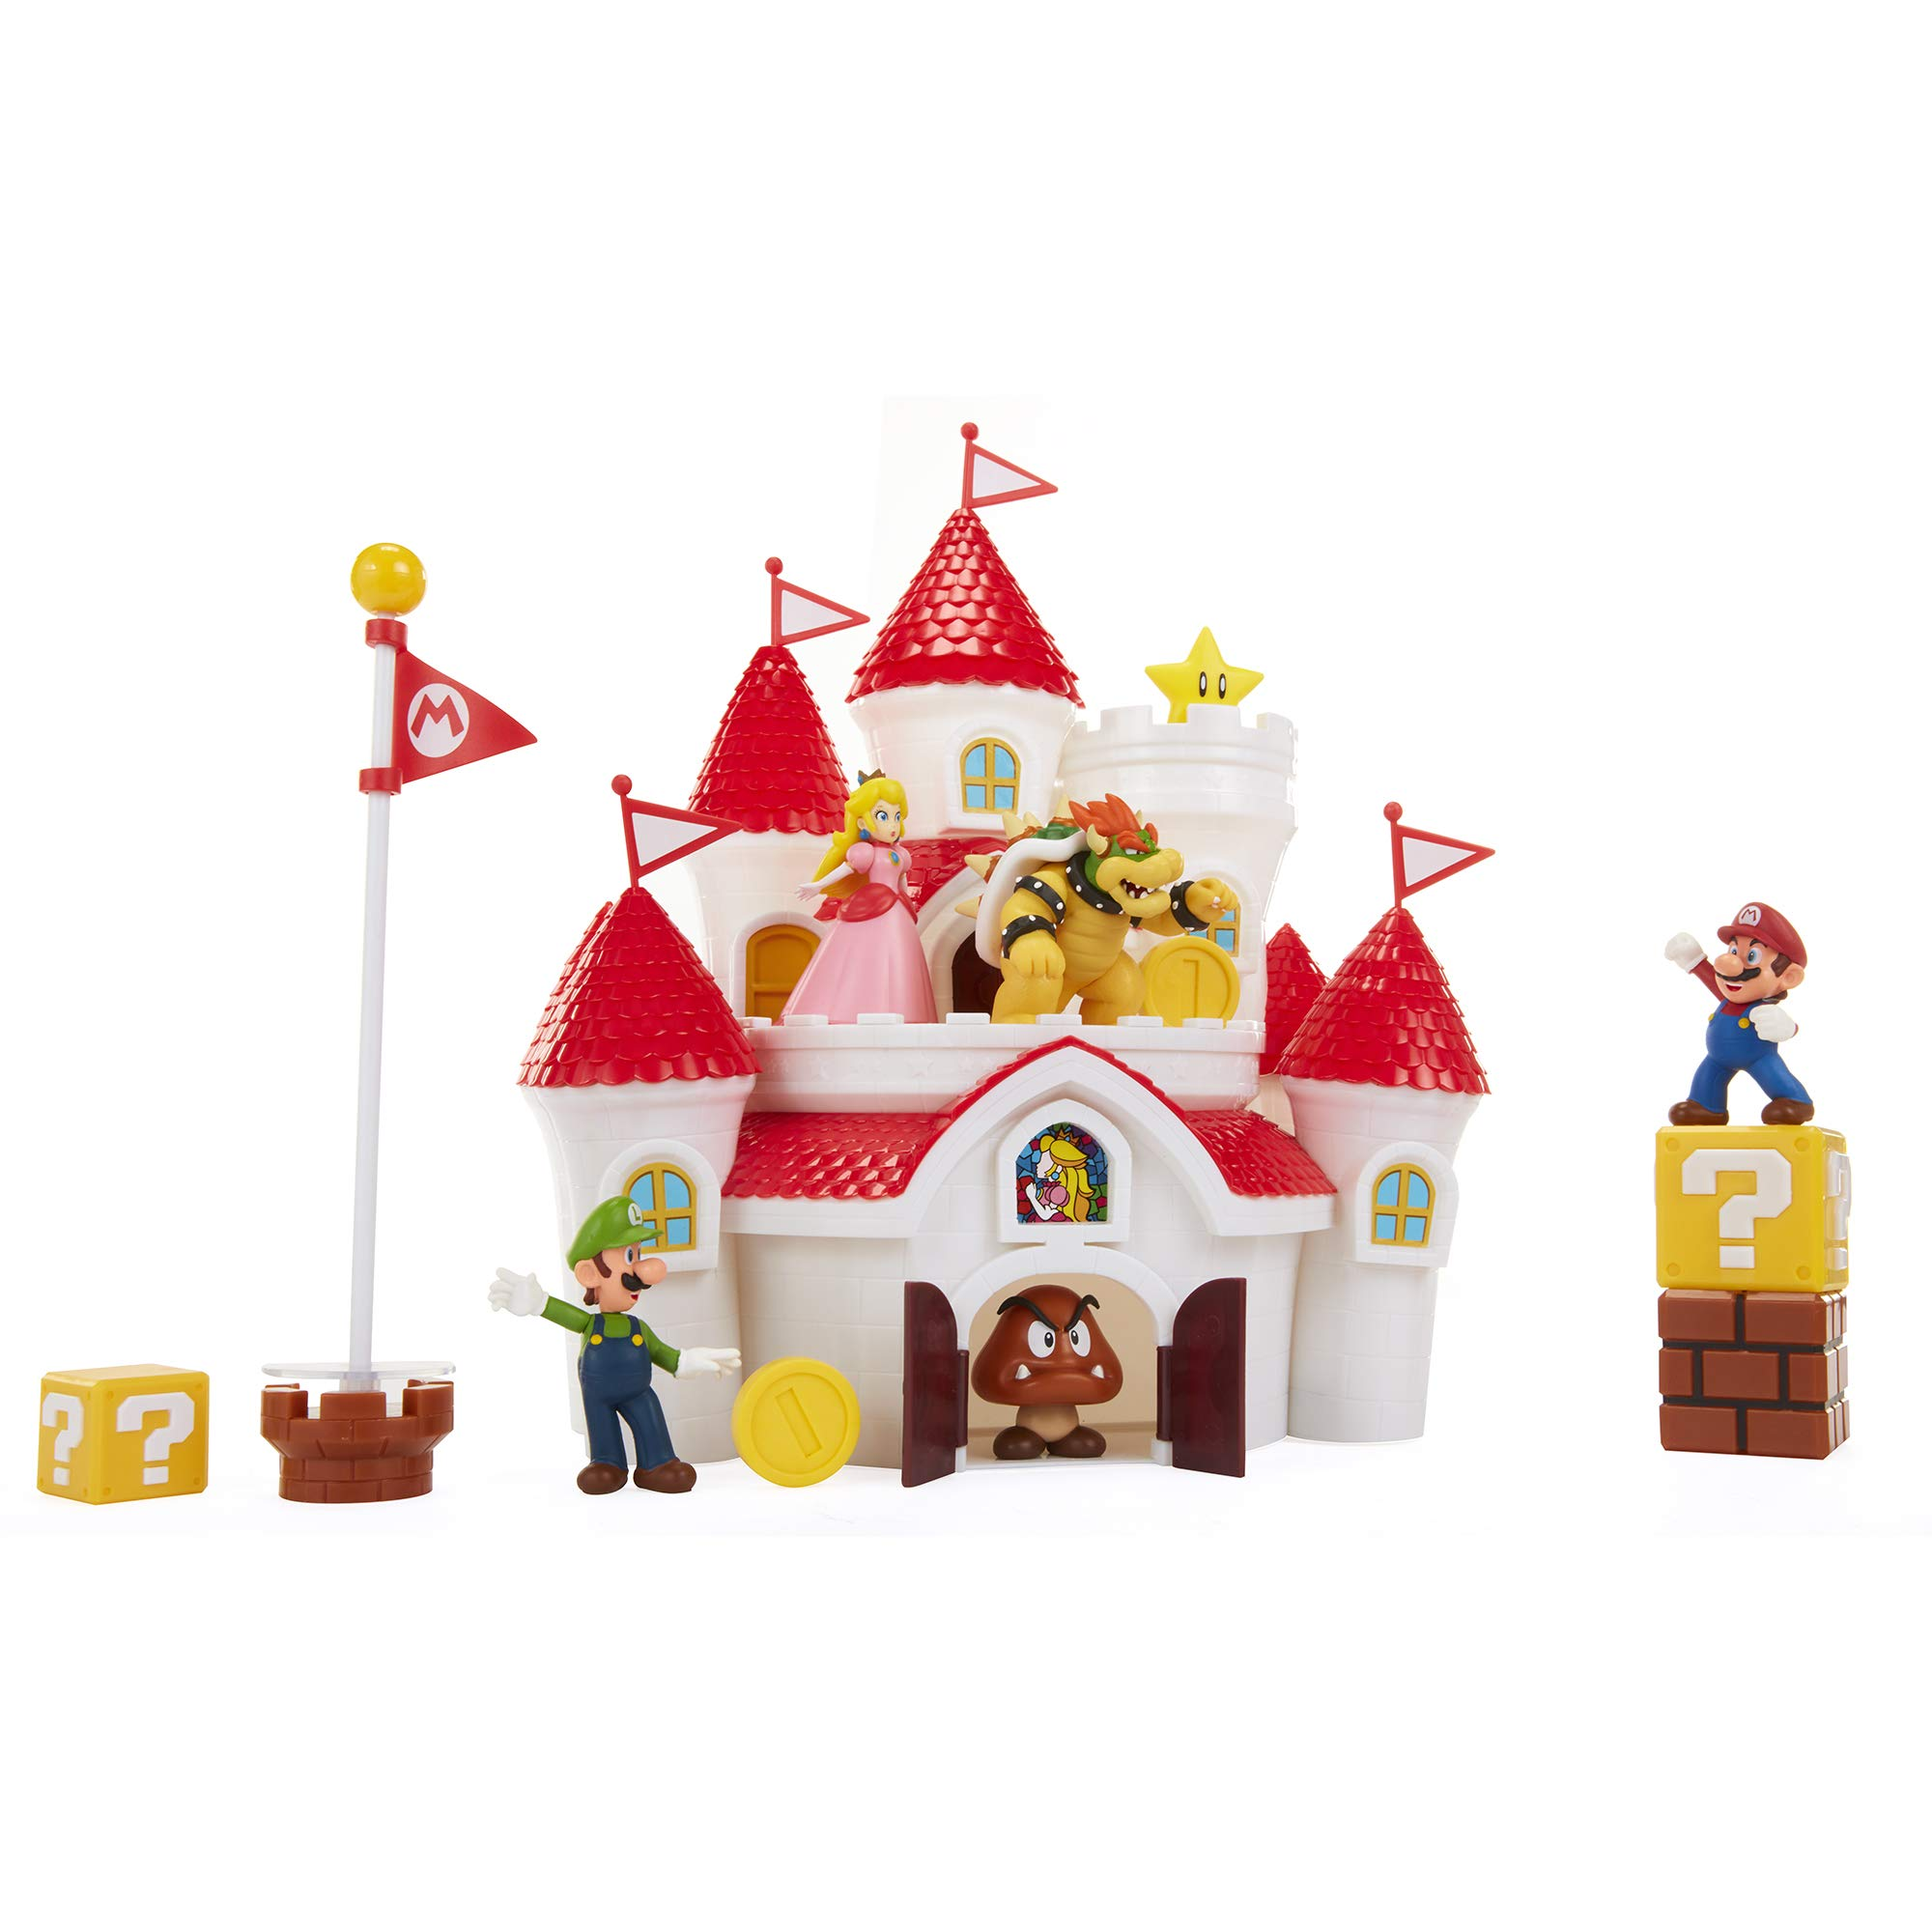 Nintendo Super Mario Deluxe Mushroom Kingdom Castle Playset with 5 2.5'' Articulated Action Figures & 4 Accessories (Includes Mario, Luigi, Princess Peach, Bowser) by Nintendo